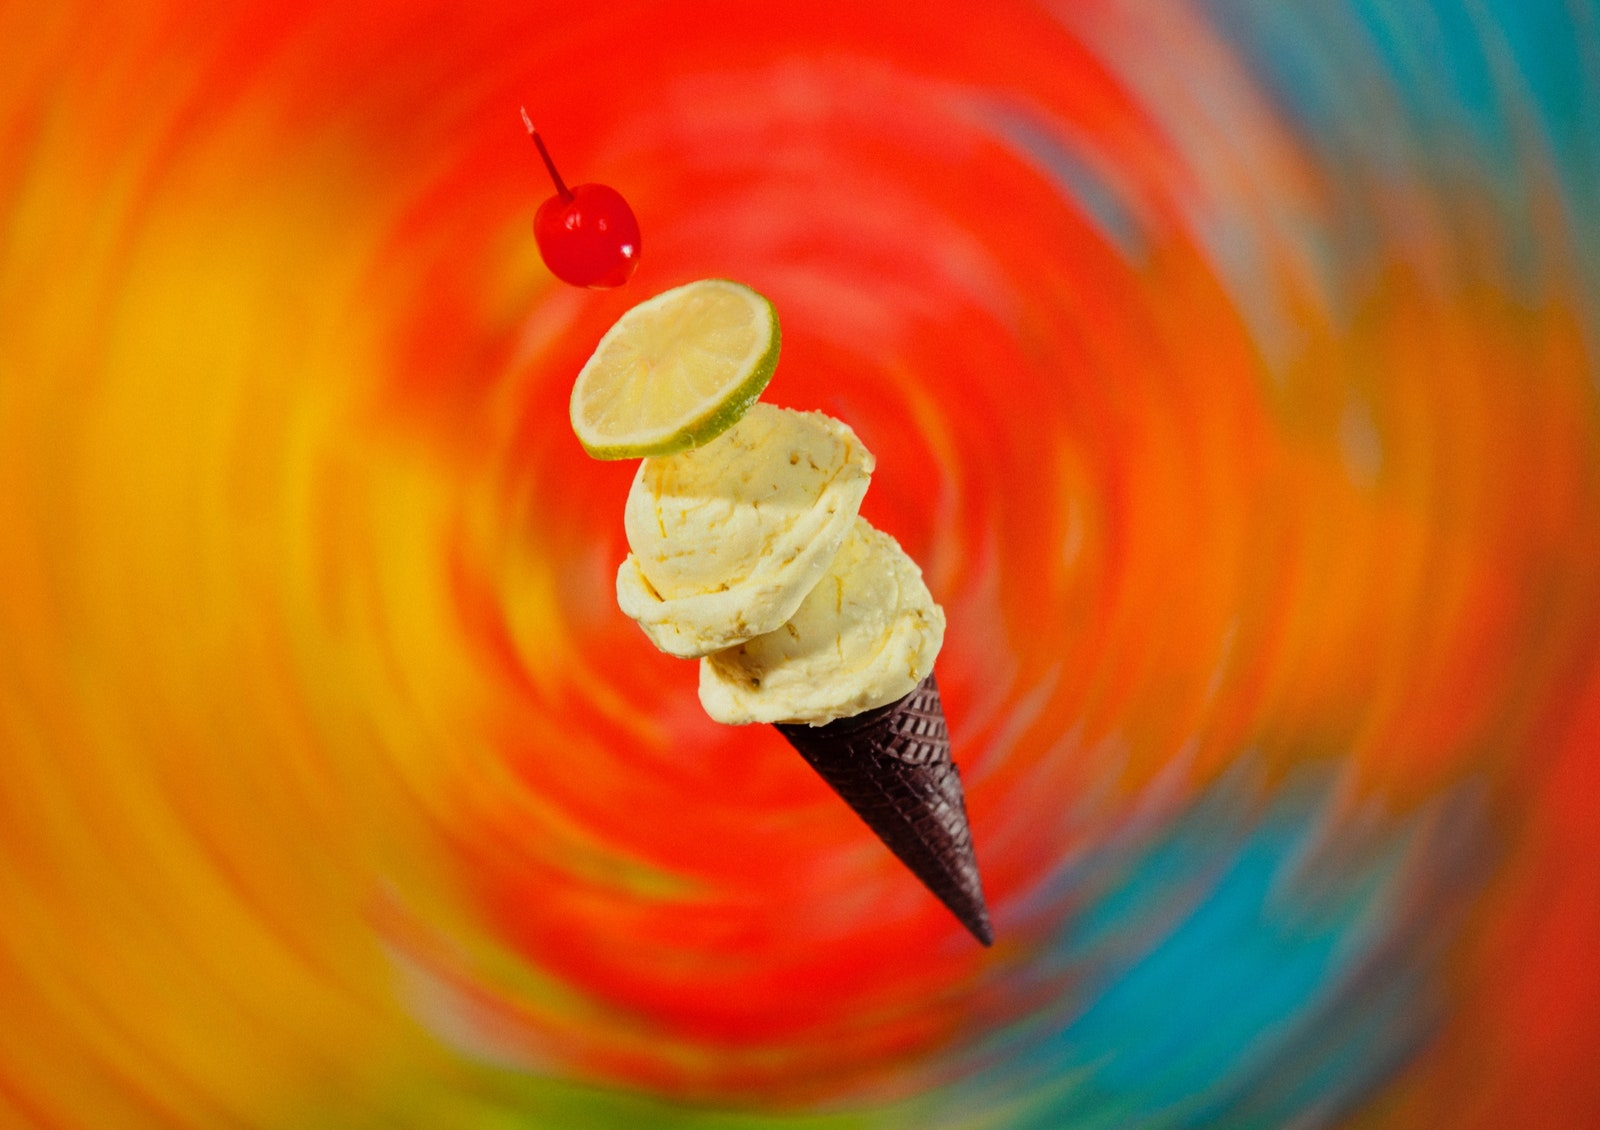 Ice cream cone with a lime and a cherry.